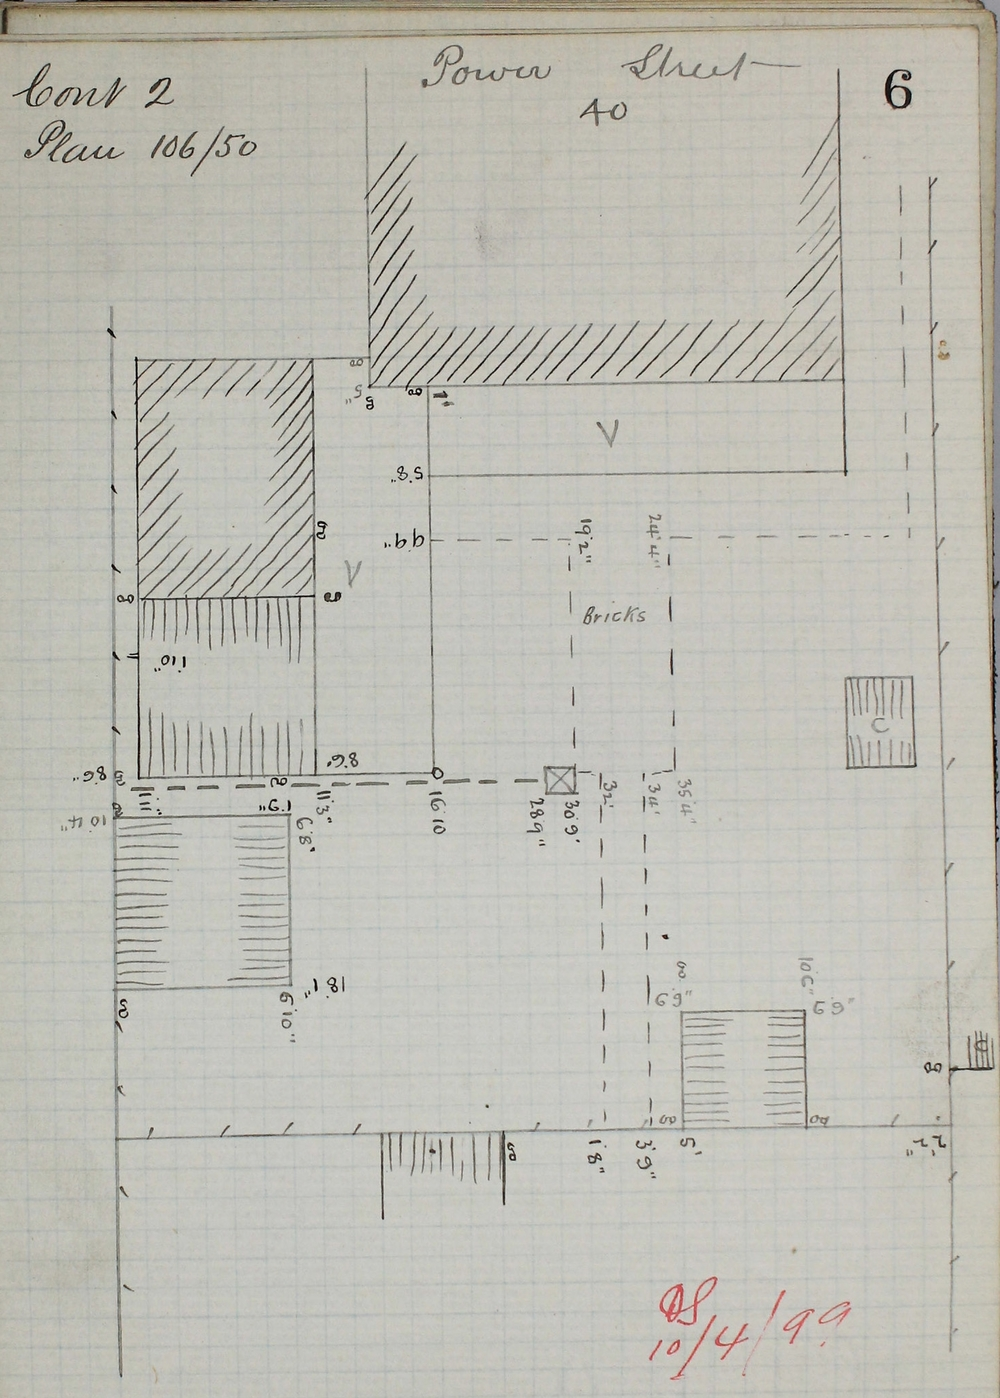 MMBW, Fieldbooks, VPRS 8600/P1 Unit 86, Book 1473, p.6.